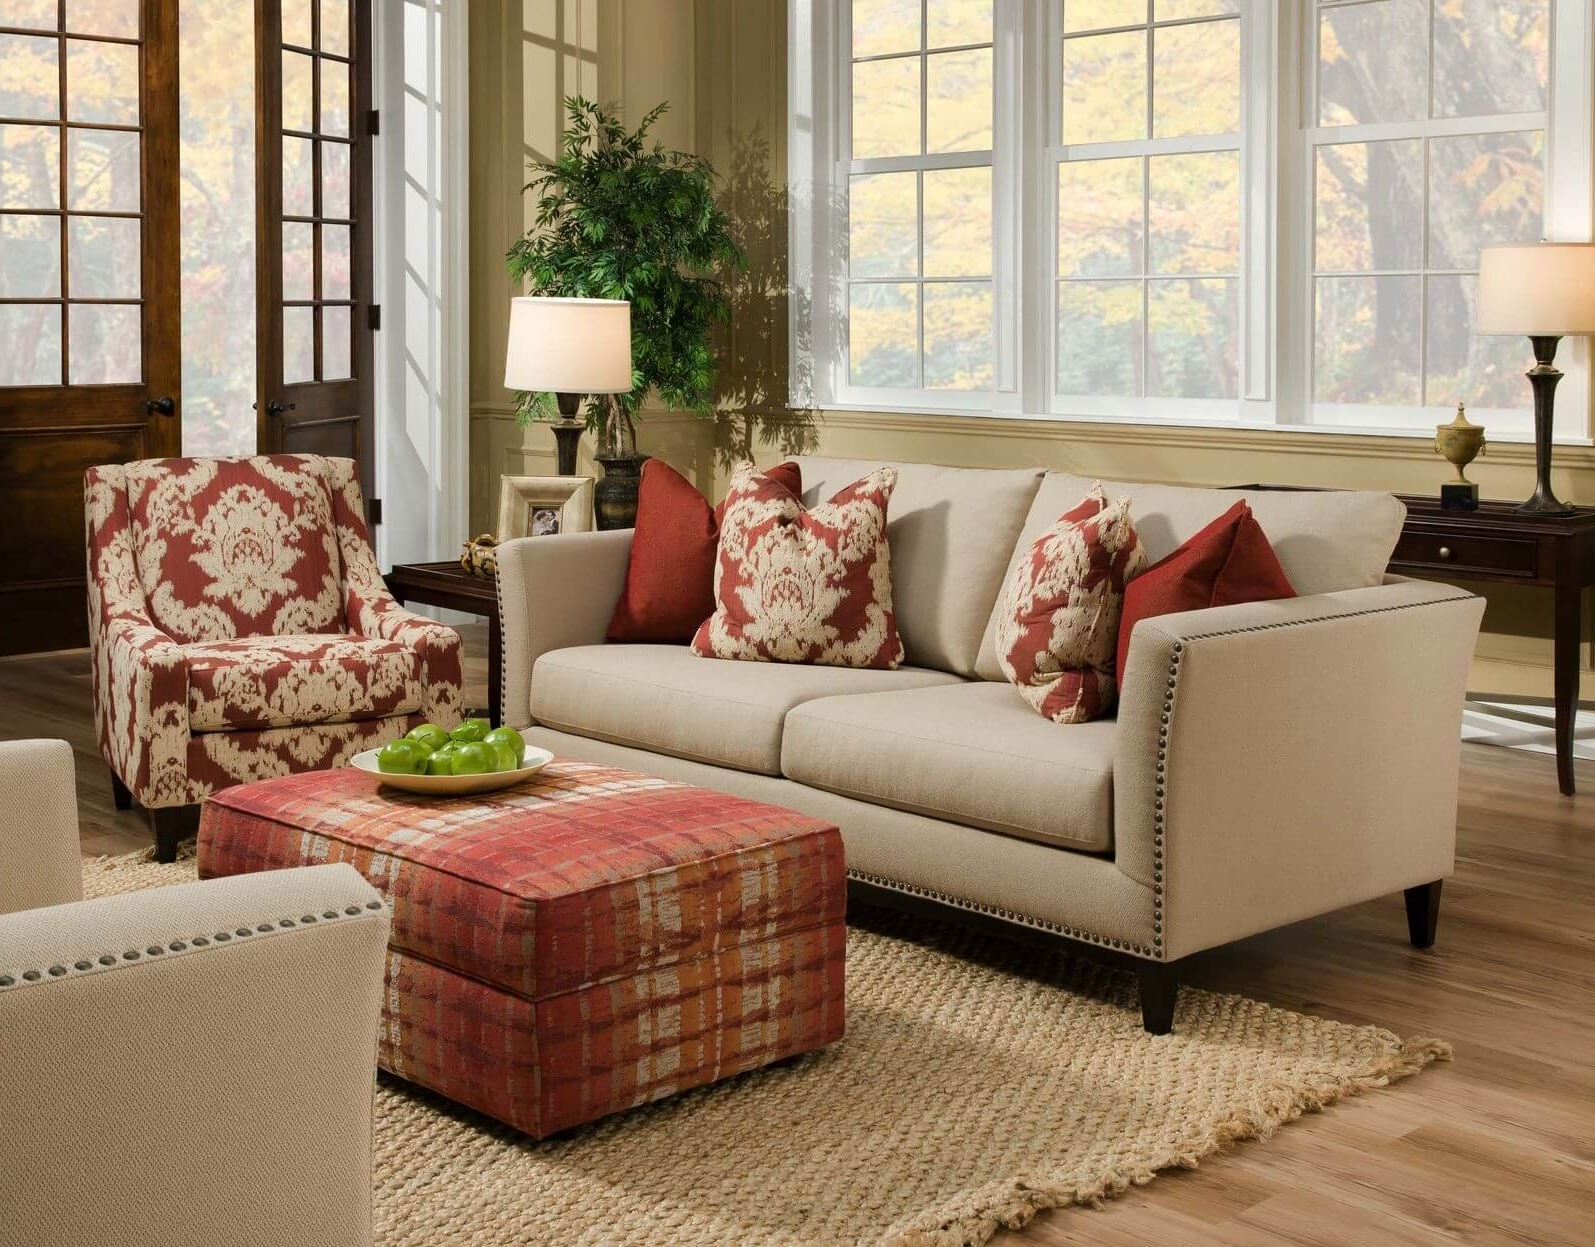 Current Beige Sofa Decor Ideas — Radionigerialagos Within Colorful Sofas And Chairs (View 7 of 15)